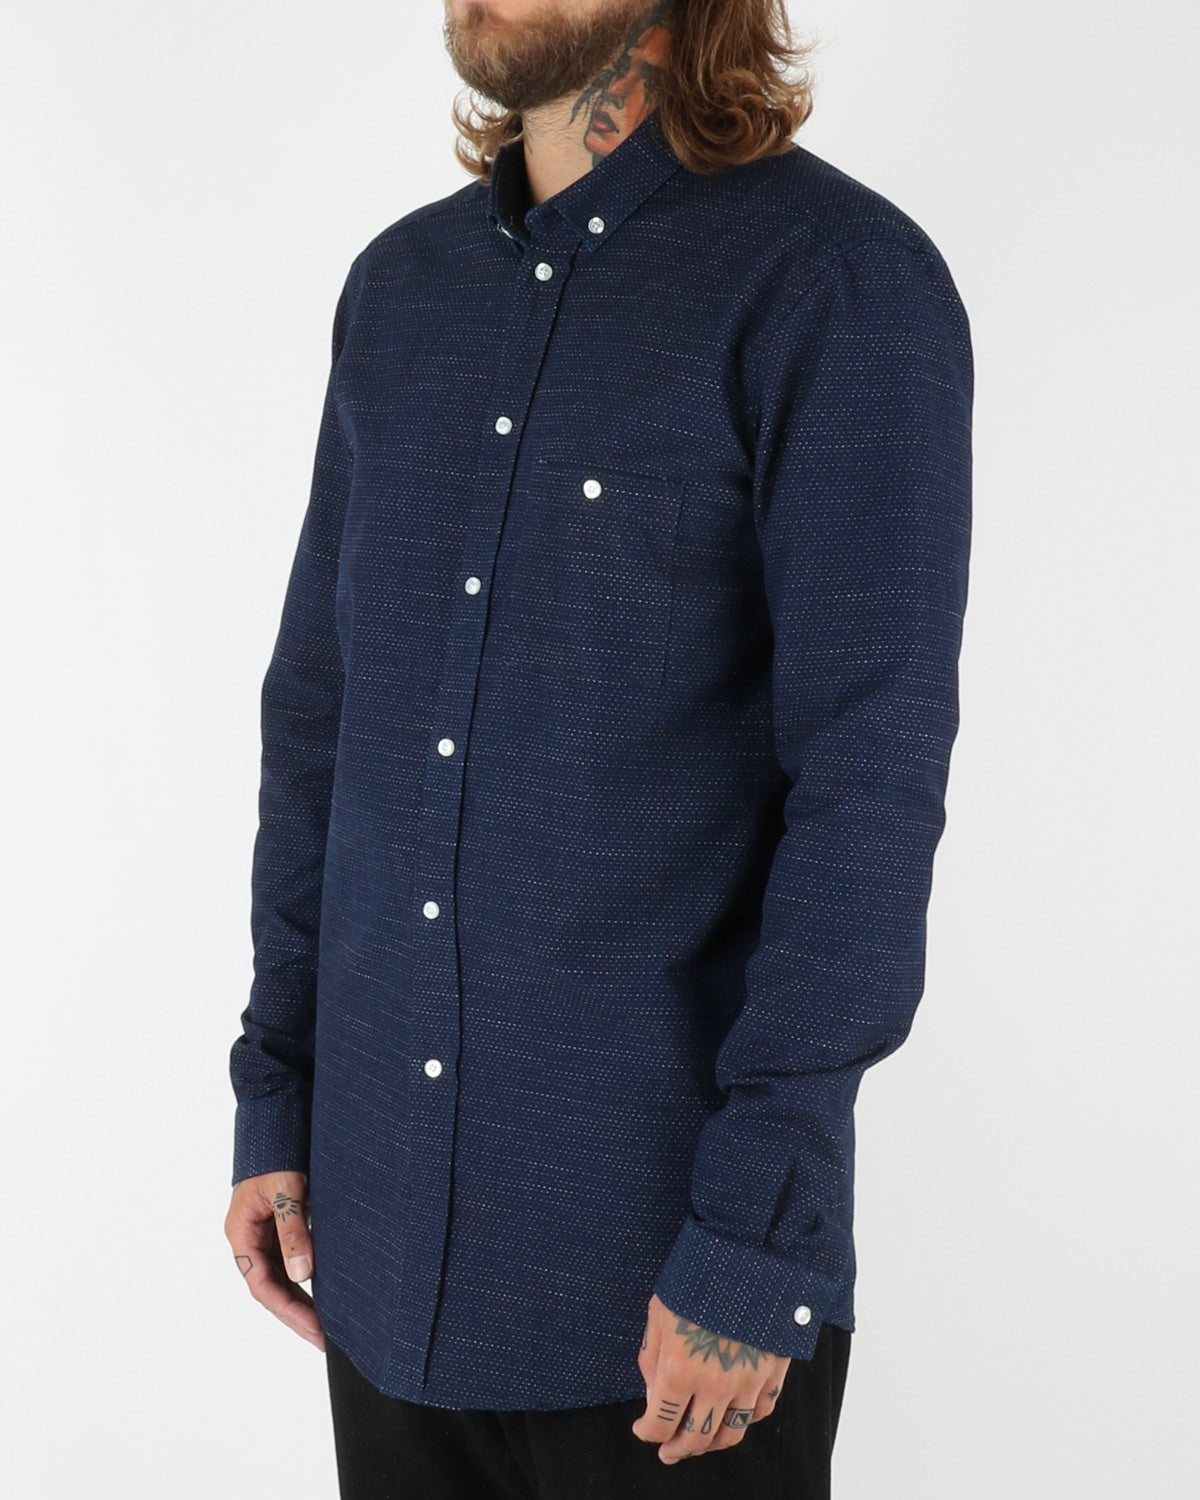 journal_clothing_grit jaq shirt_view_2_3